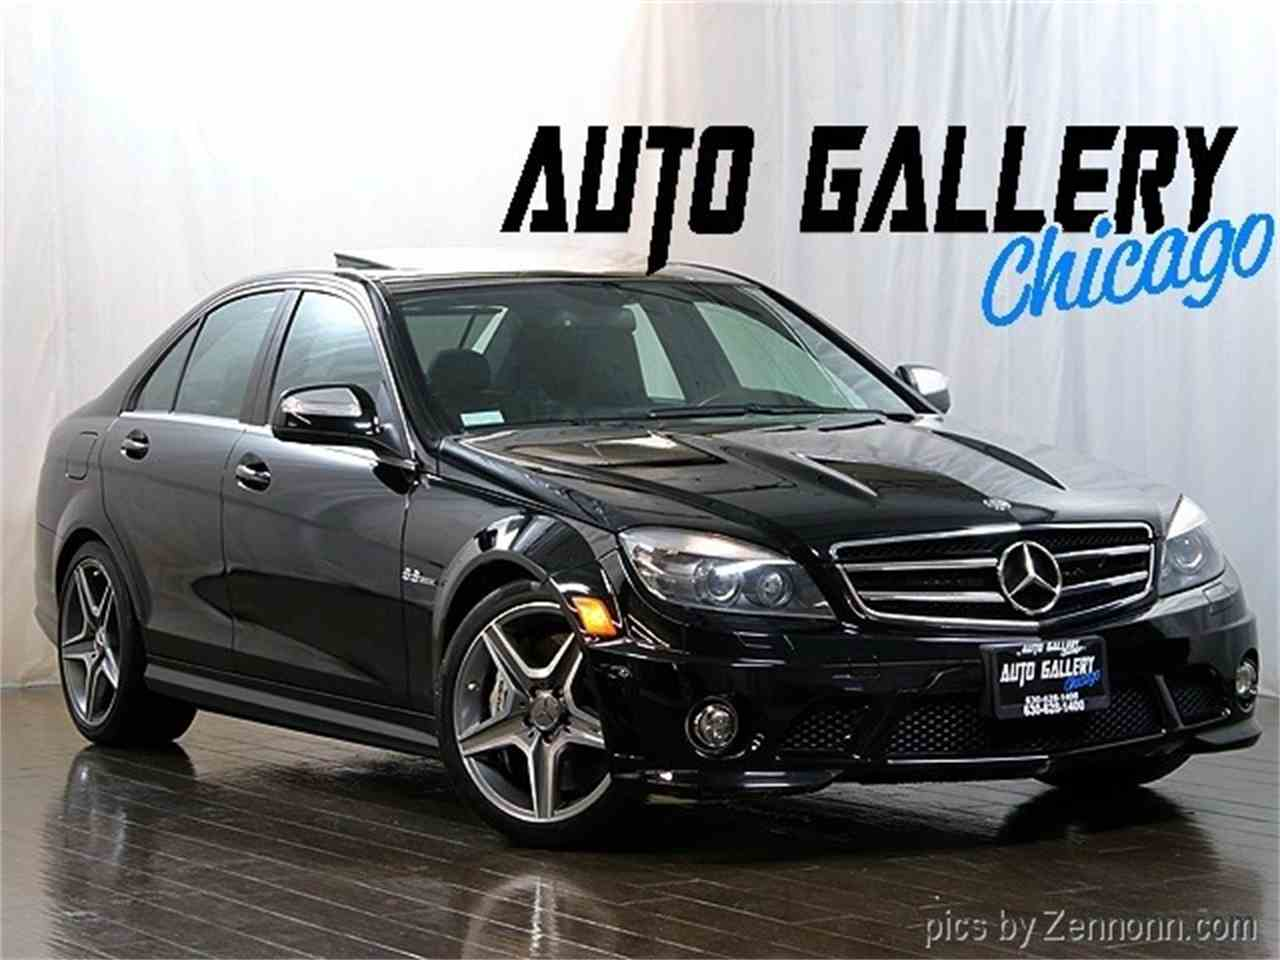 Large Picture of '08 Mercedes-Benz C-Class Offered by Auto Gallery Chicago - MC1Z